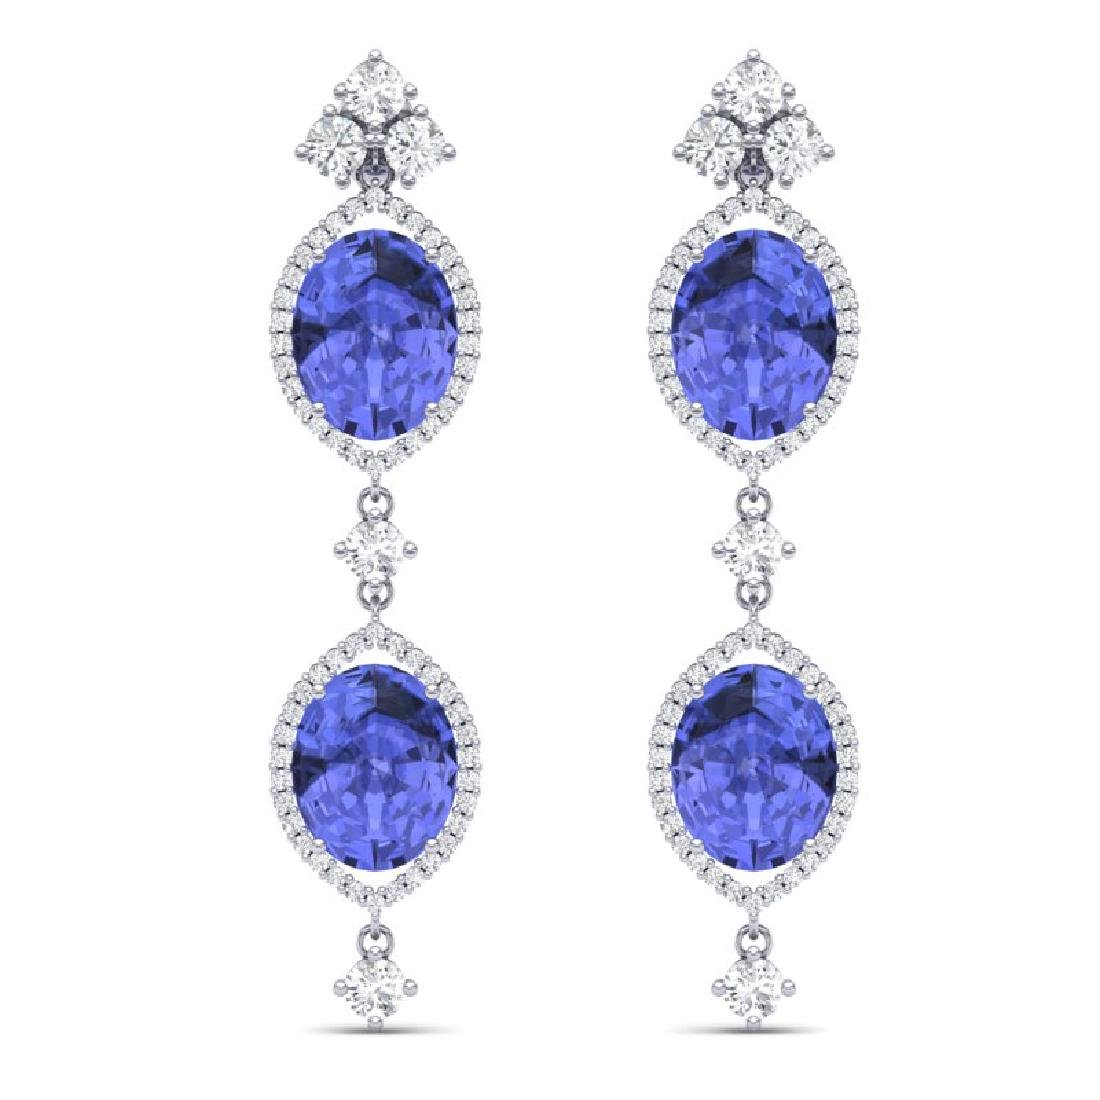 16.21 CTW Royalty Tanzanite & VS Diamond Earrings 18K